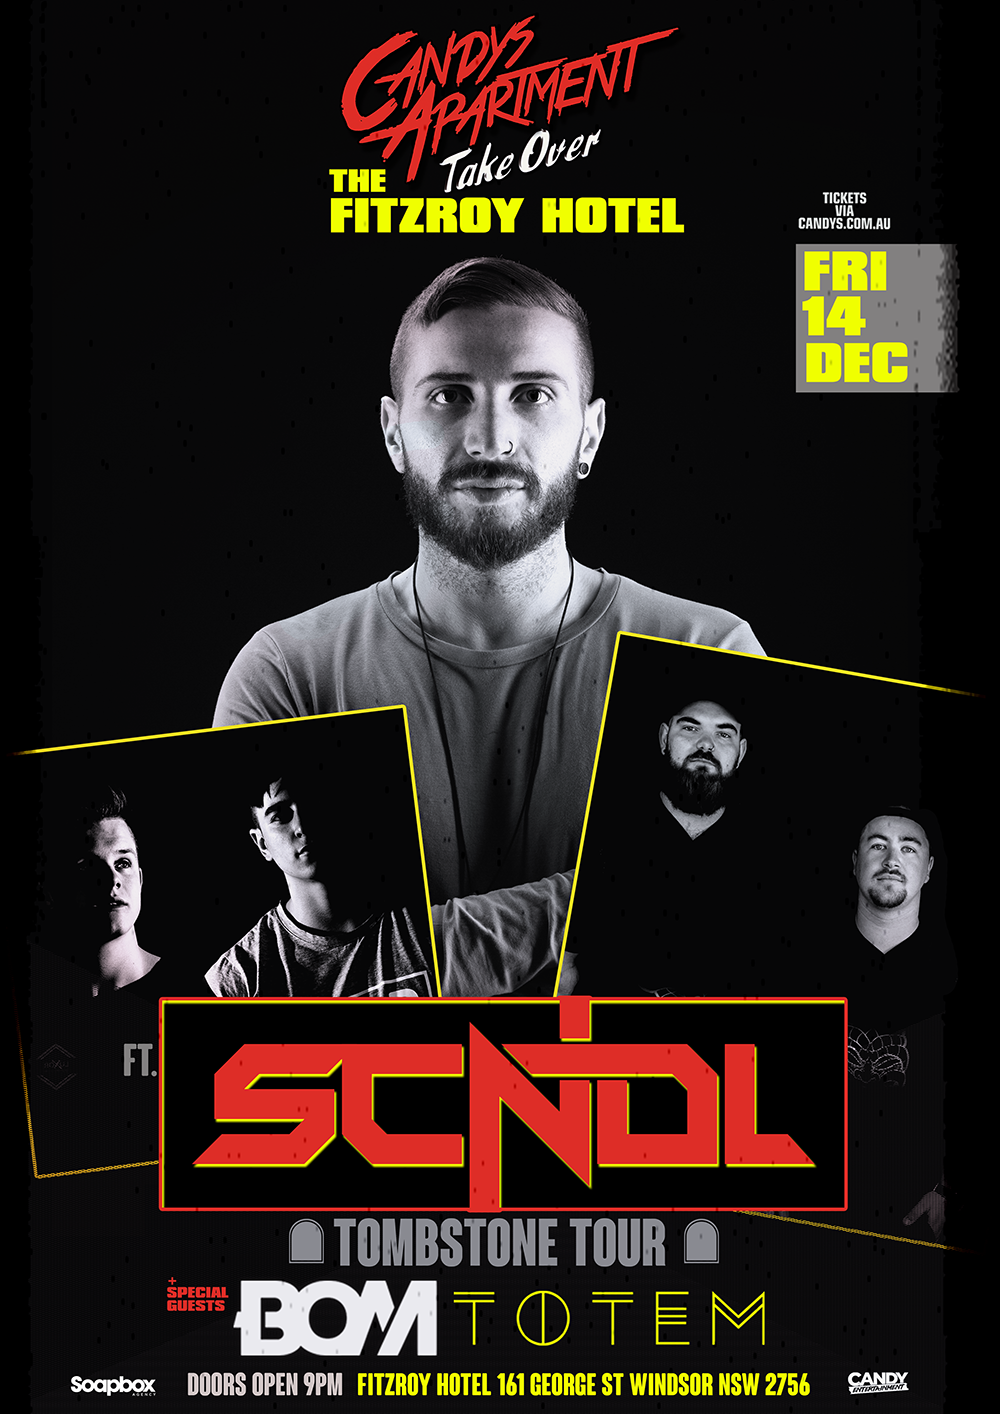 Candys Takeover the Fitzroy Hotel ft. SCNDL